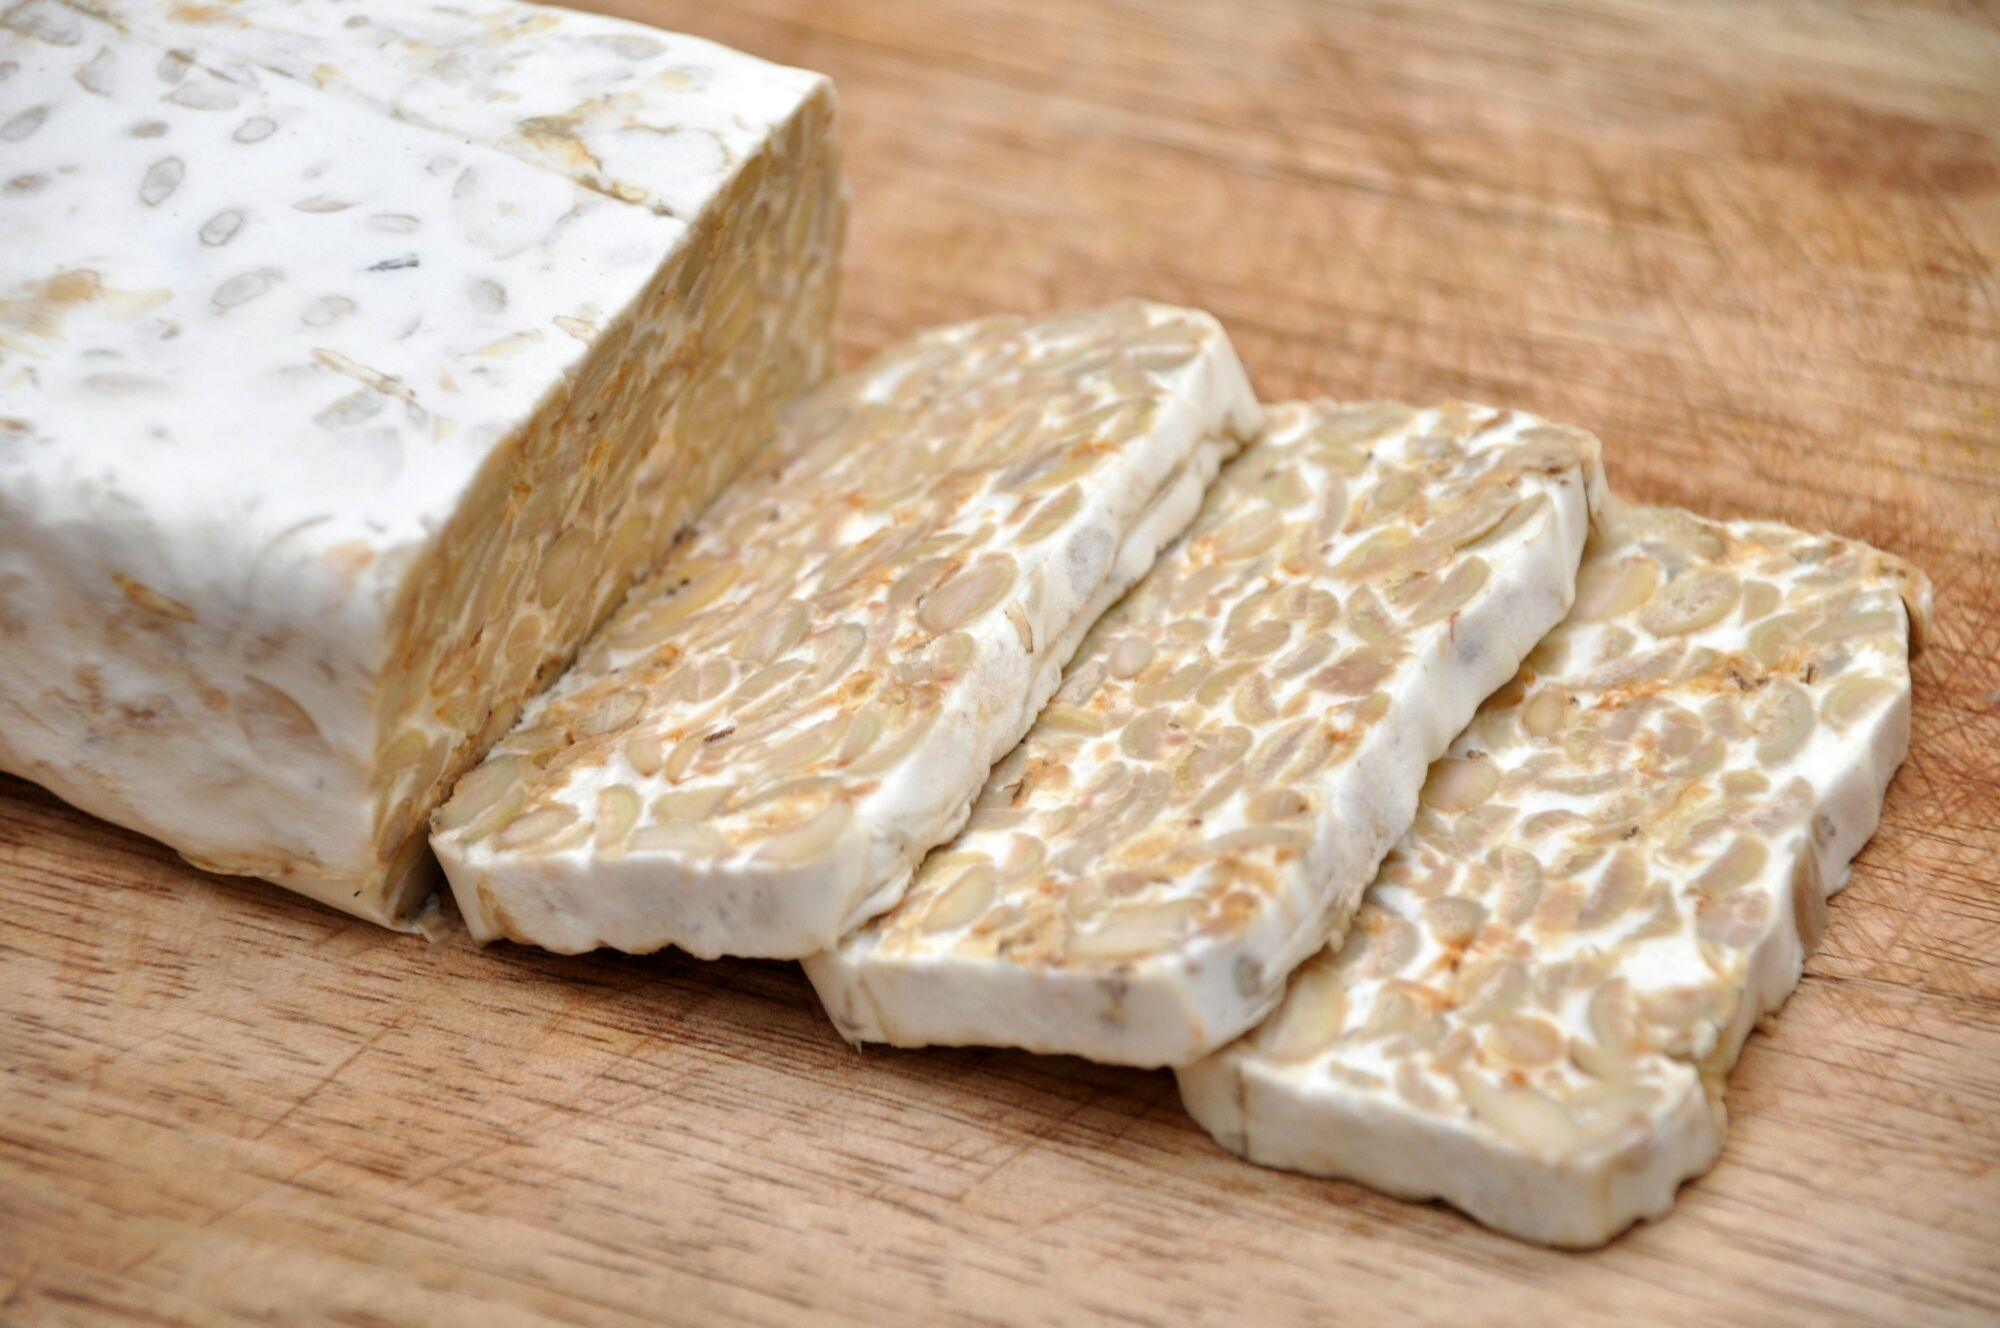 High Angle View Of Tempeh On Table